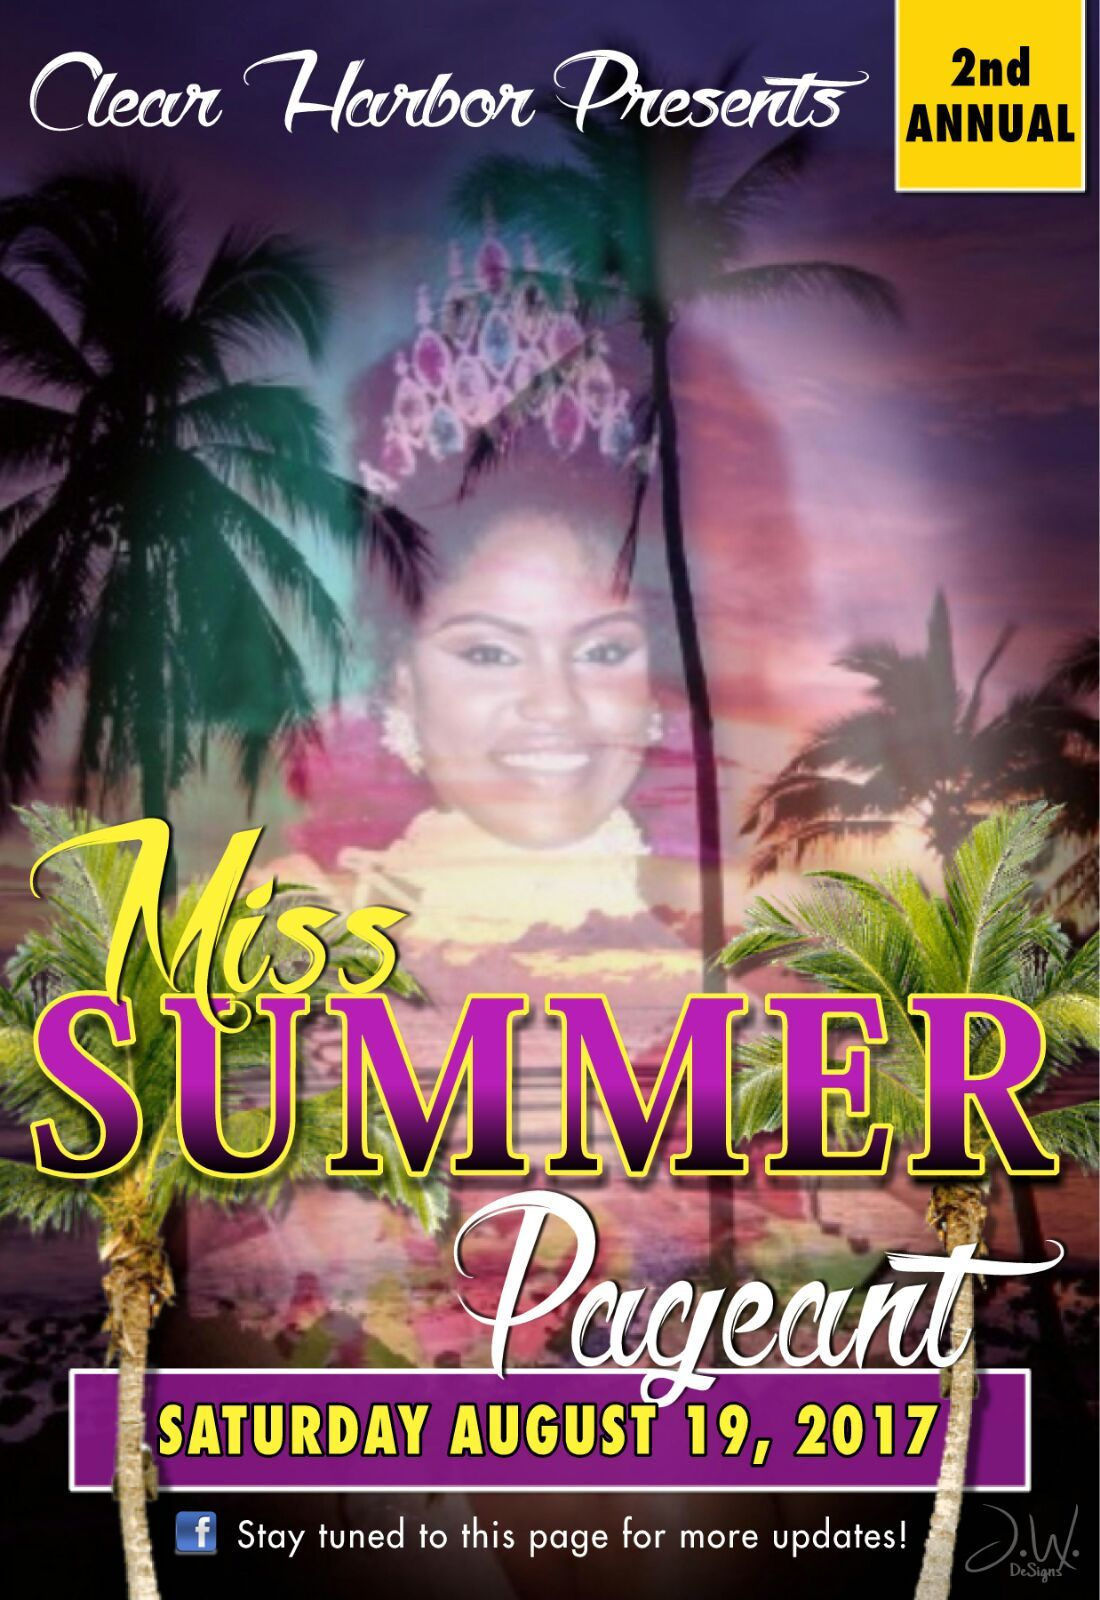 Clear Harbor presents the Miss Summer Pageant 2017